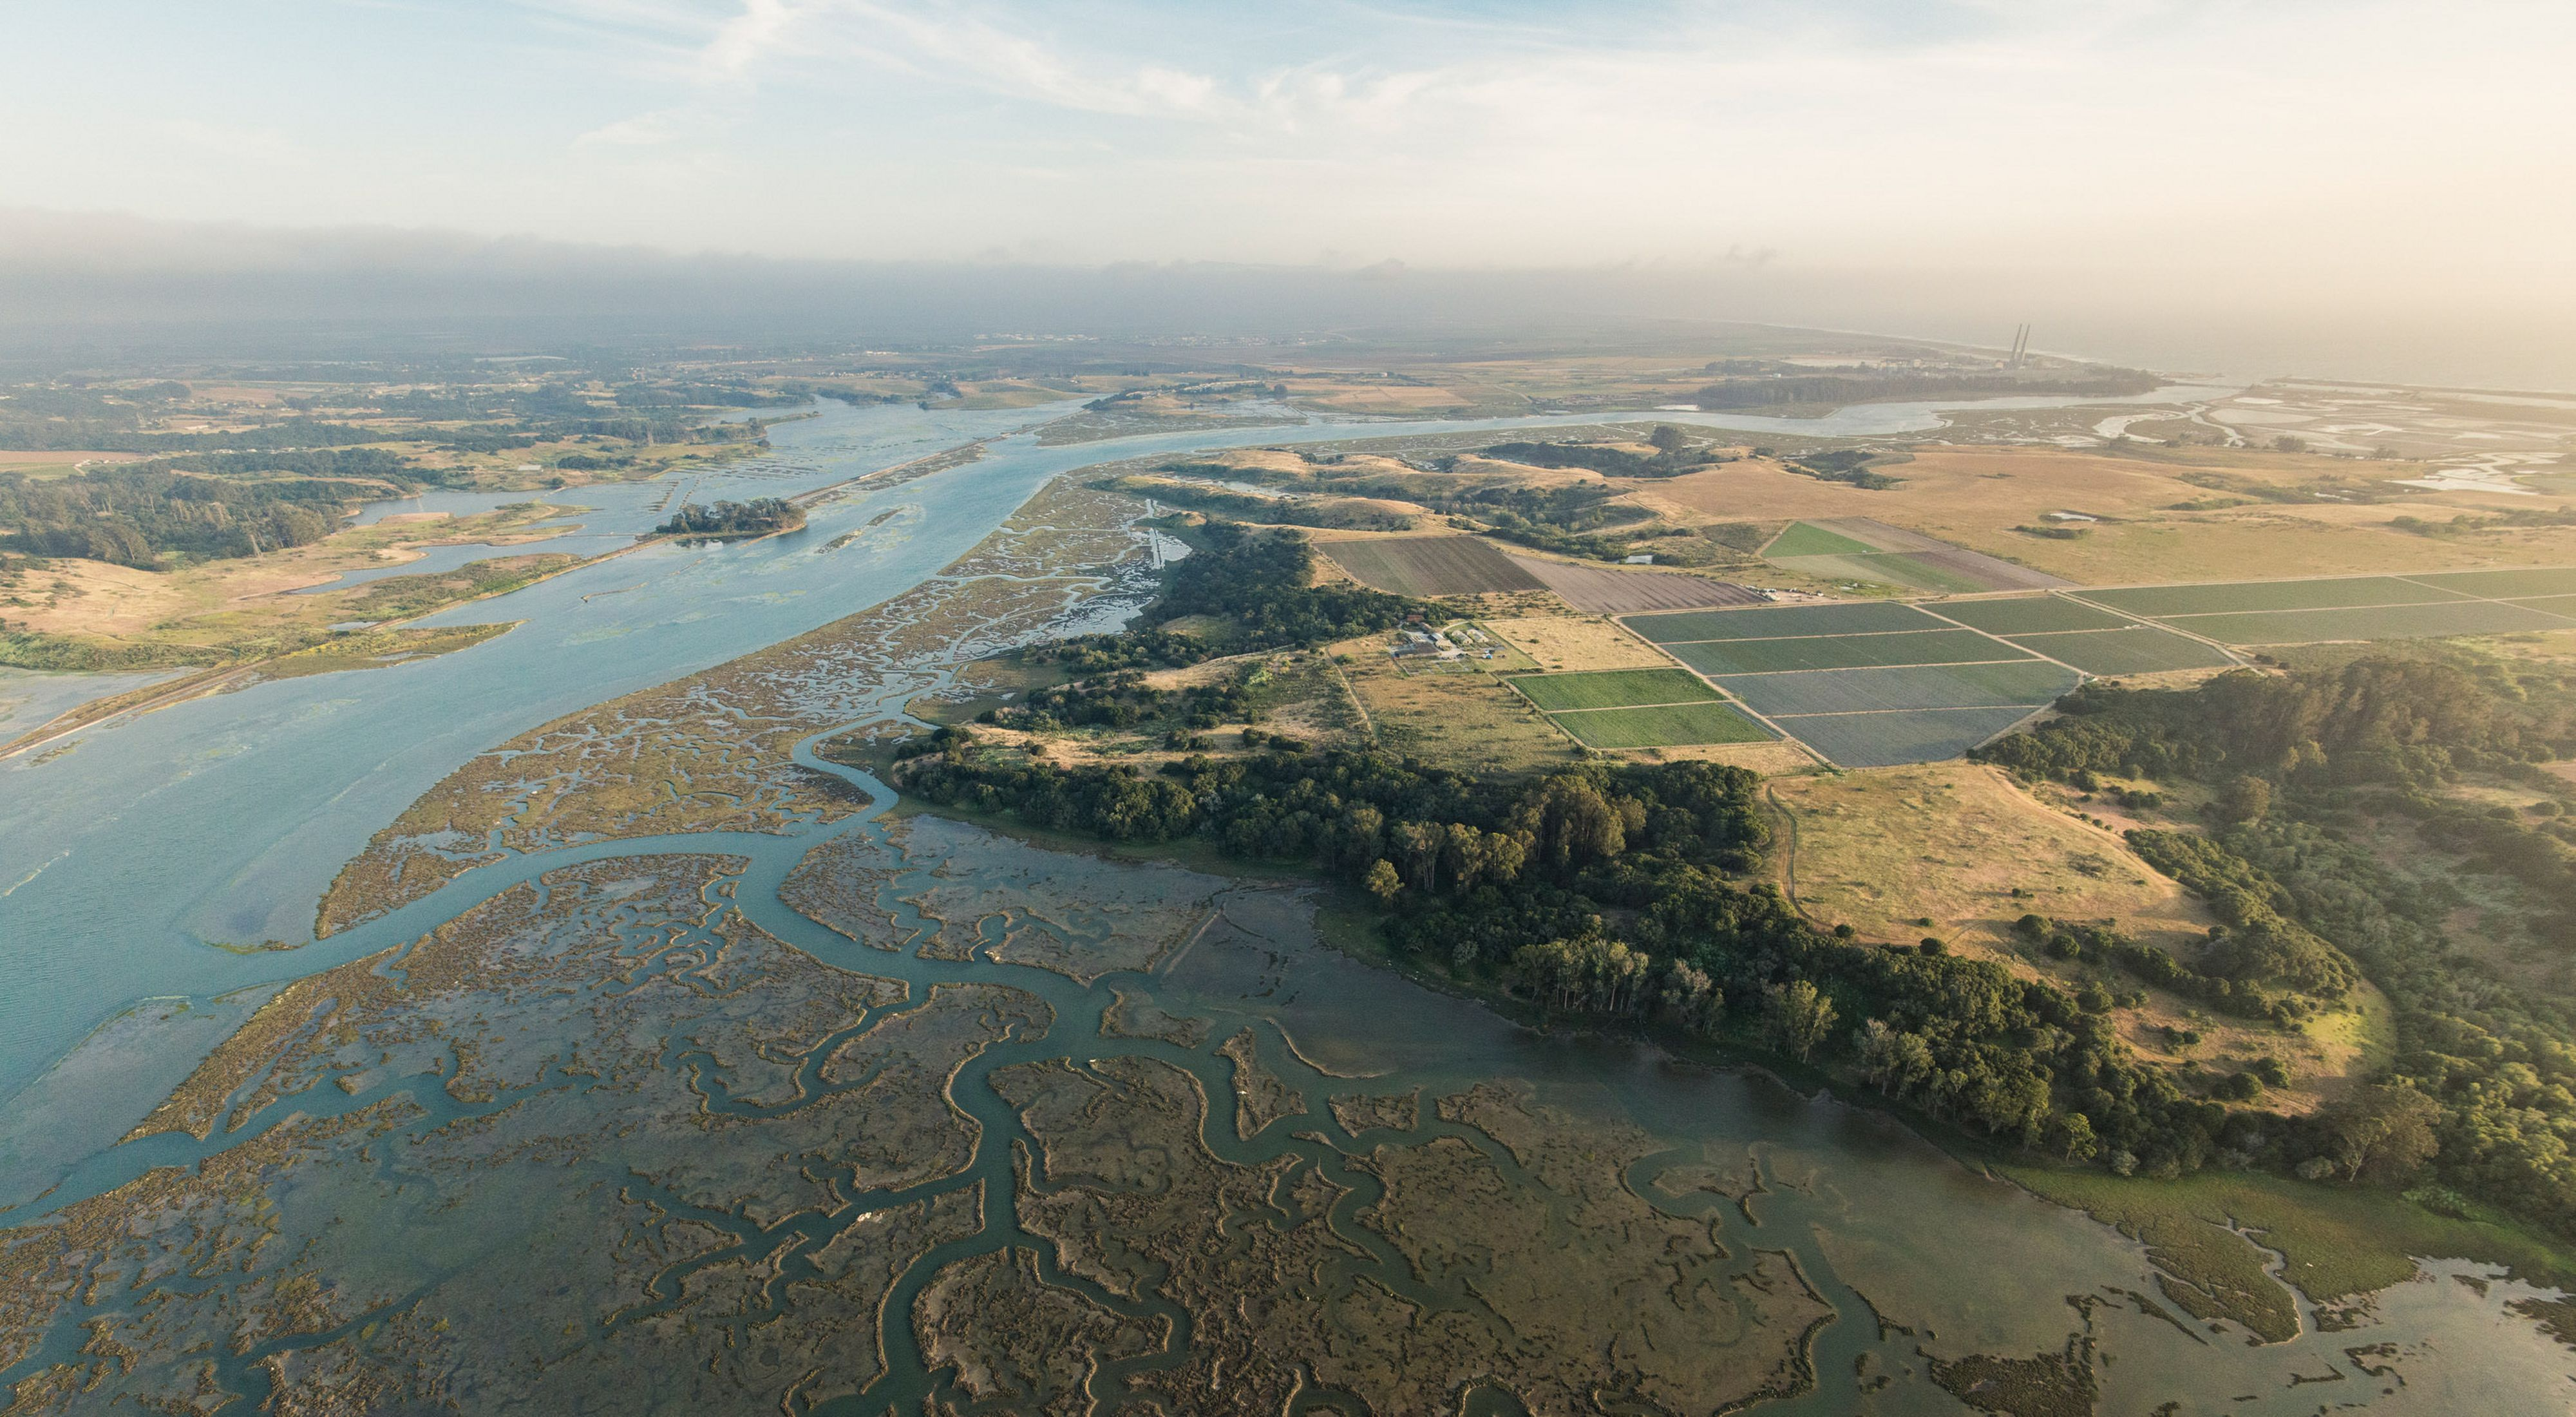 An aerial view of a California river and agricultural fields.